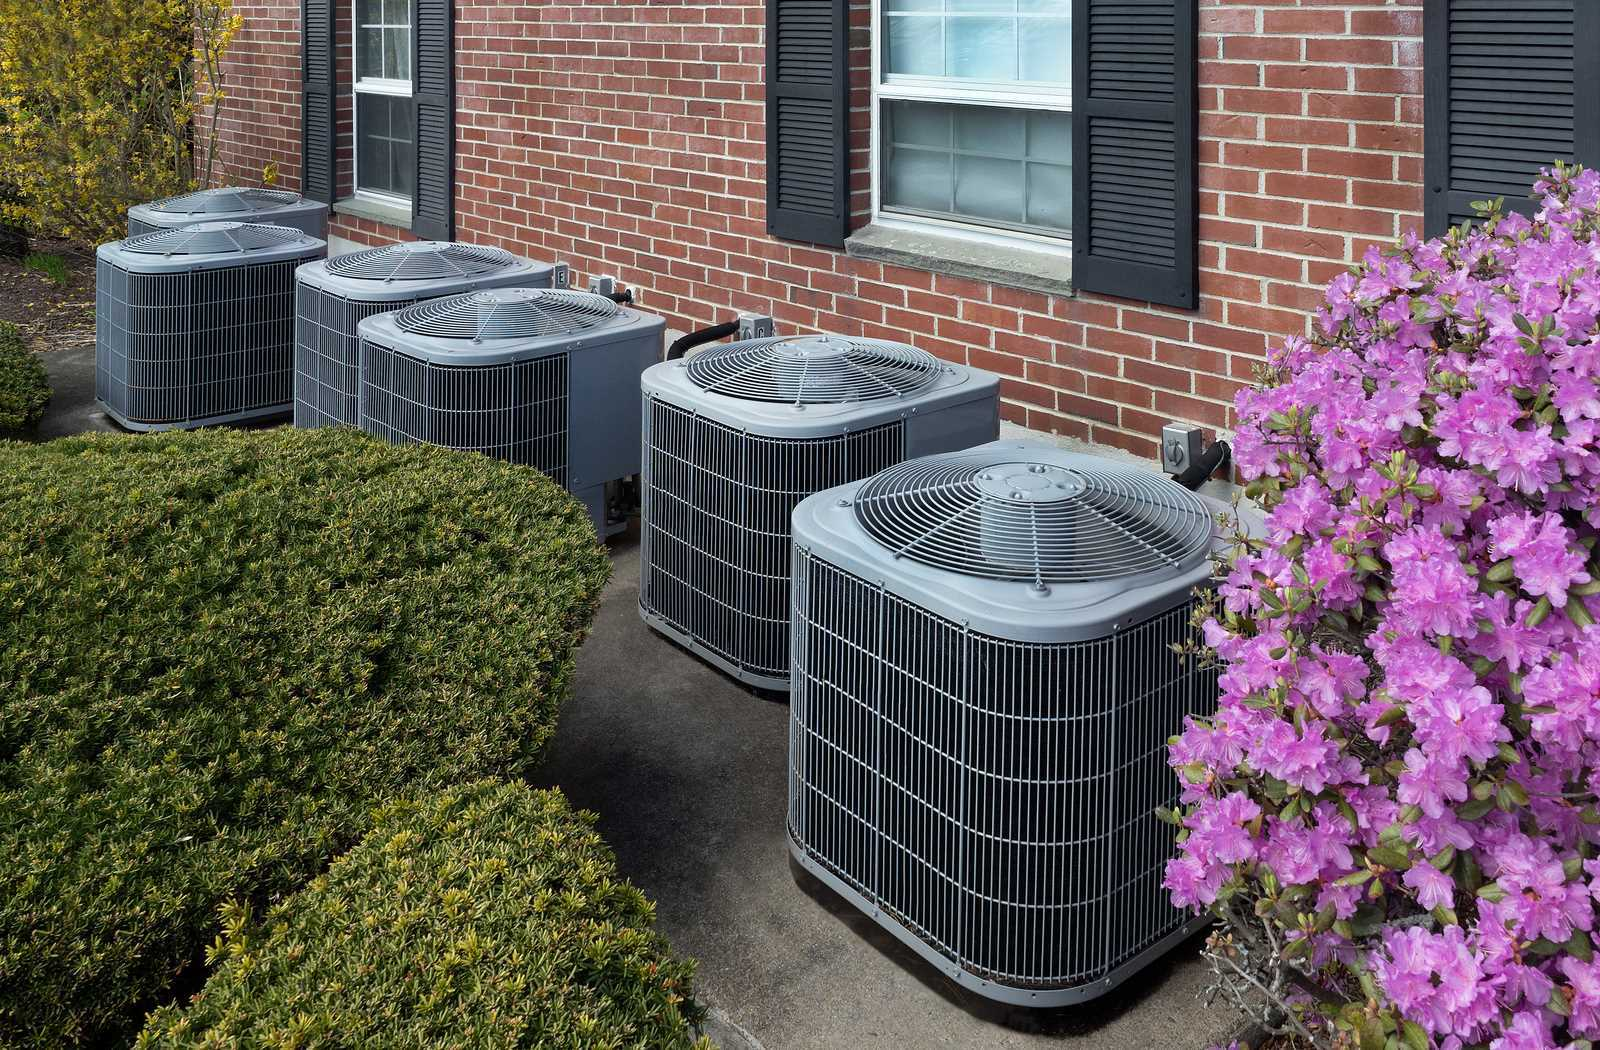 Air conditioning compressors beside garden with purple flowers